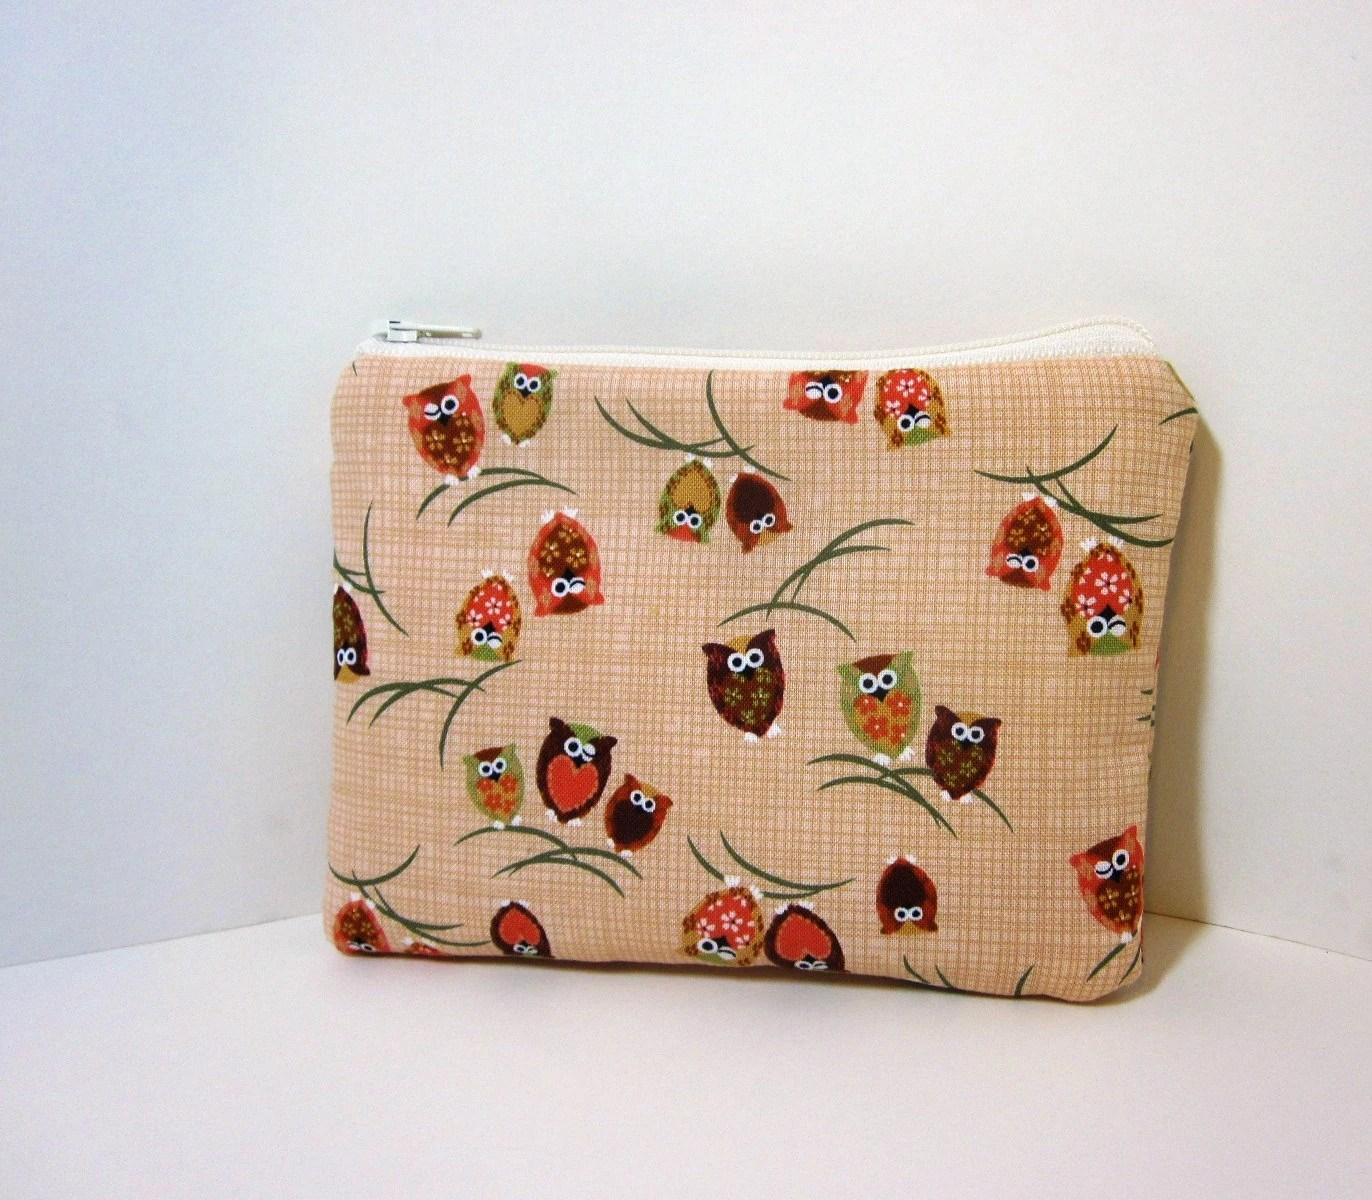 Small Zipper Pouch - Winking Owls